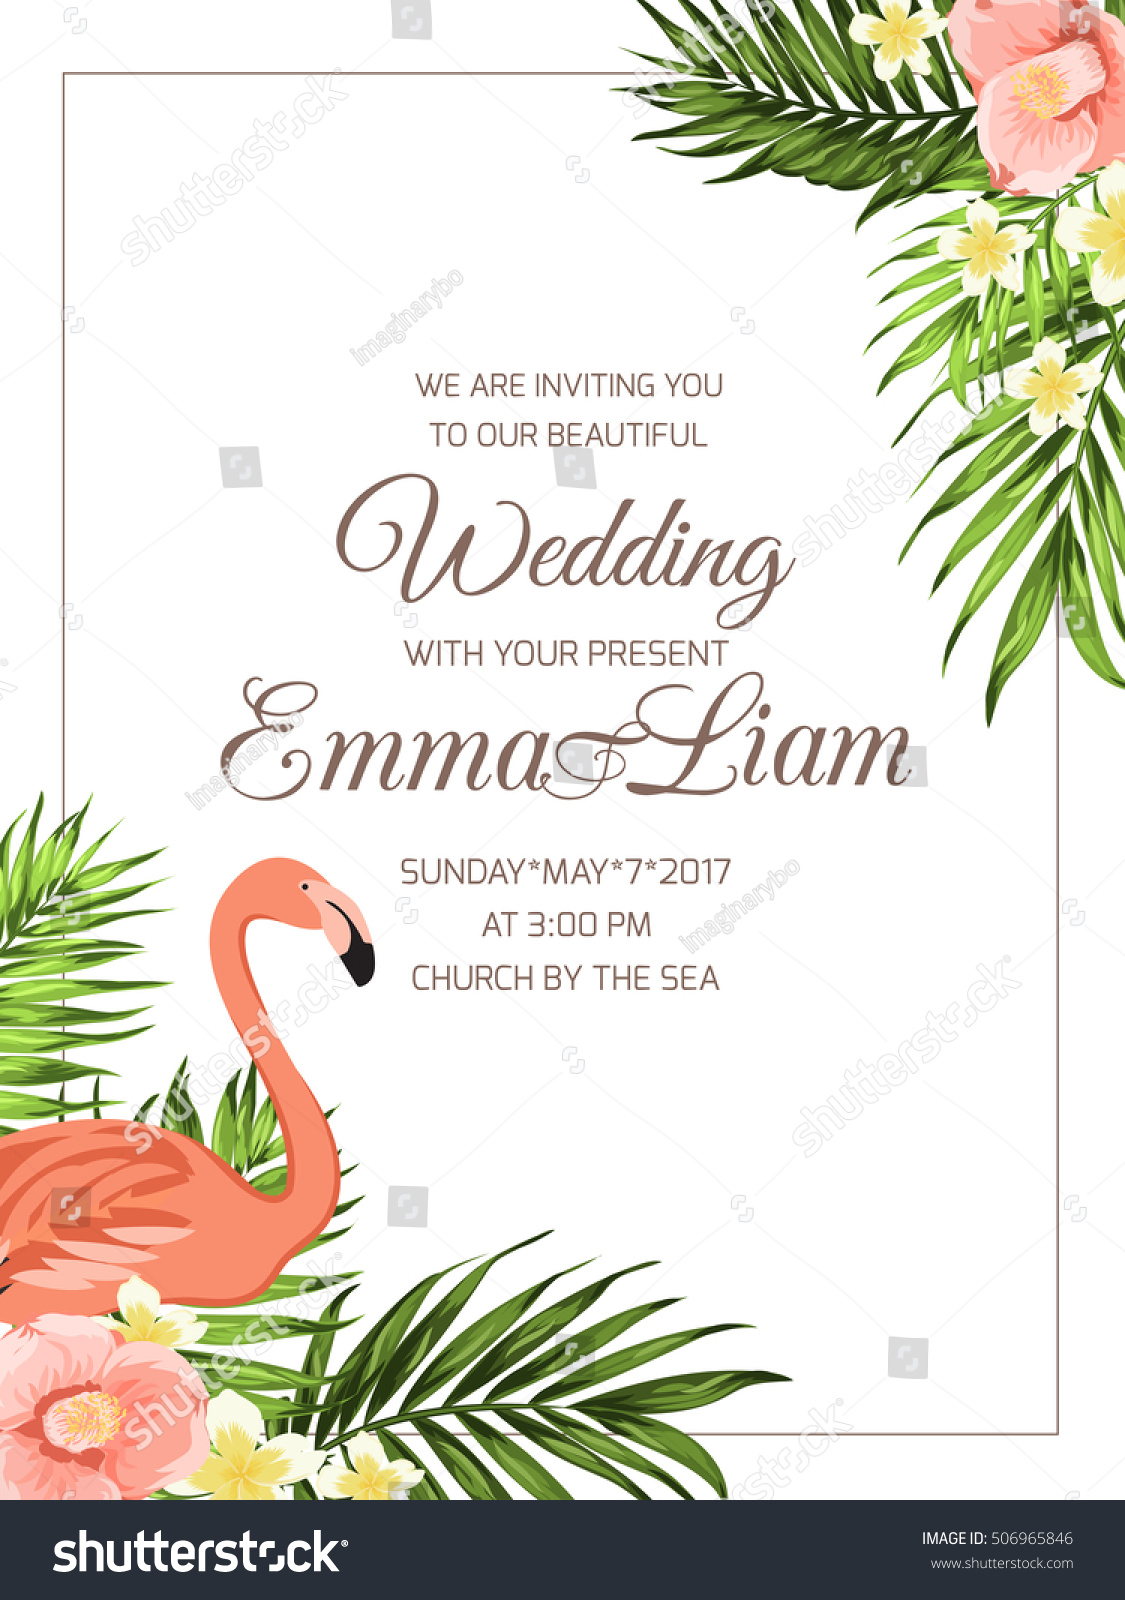 Marriage Ceremony Invitation Template. Corner Border Frame With Flamingo  Bird, Palm Leaves, Camellia  Ceremony Invitation Template